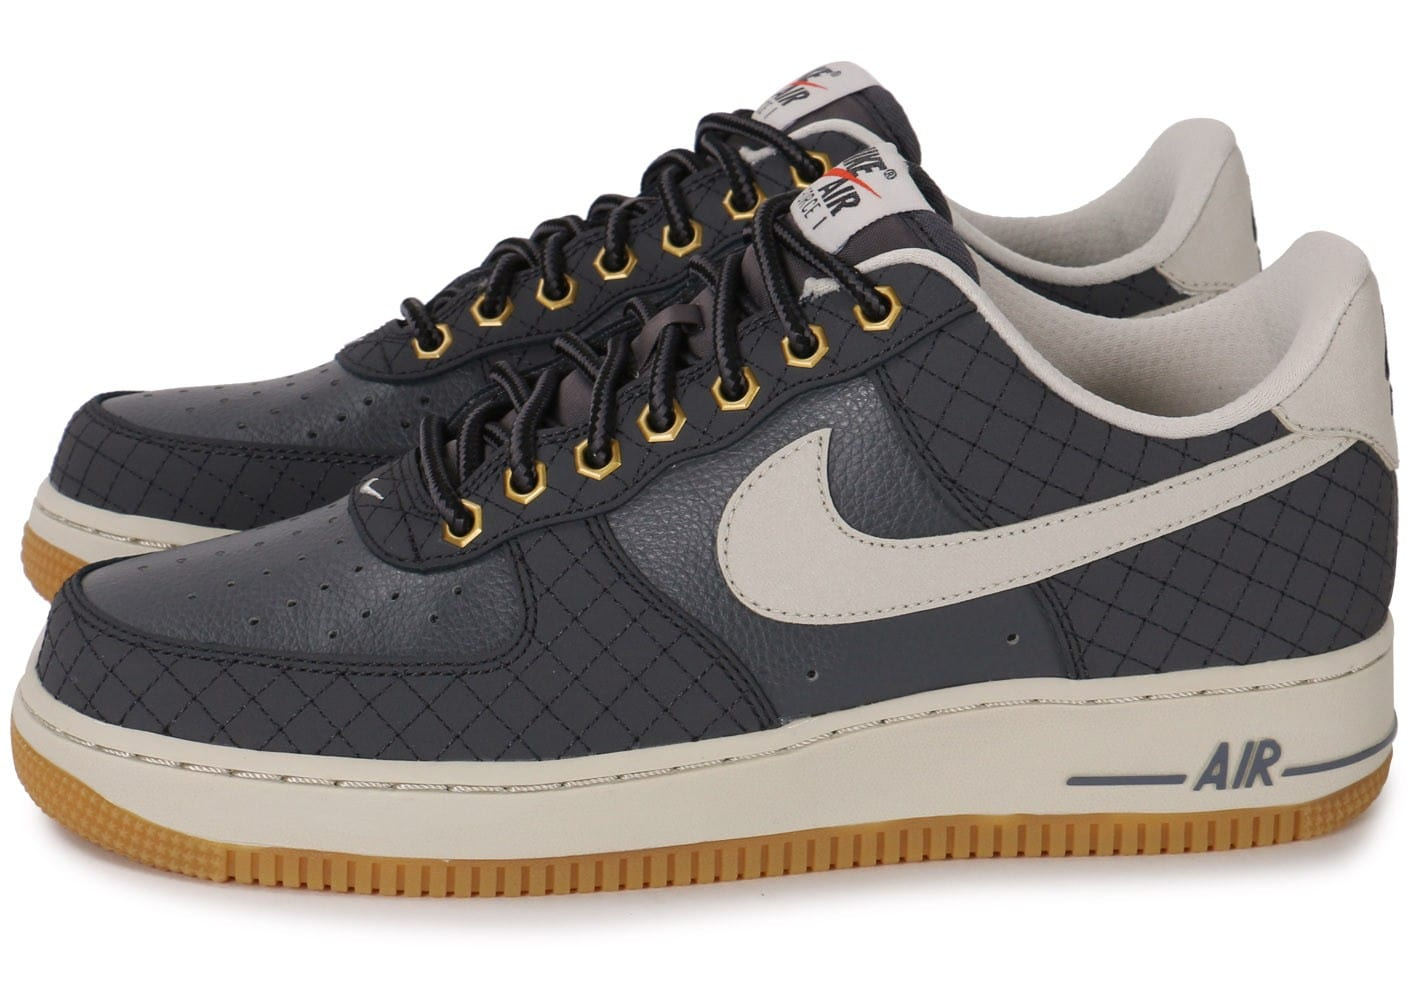 nike air force 1 low grise chaussures homme chausport. Black Bedroom Furniture Sets. Home Design Ideas